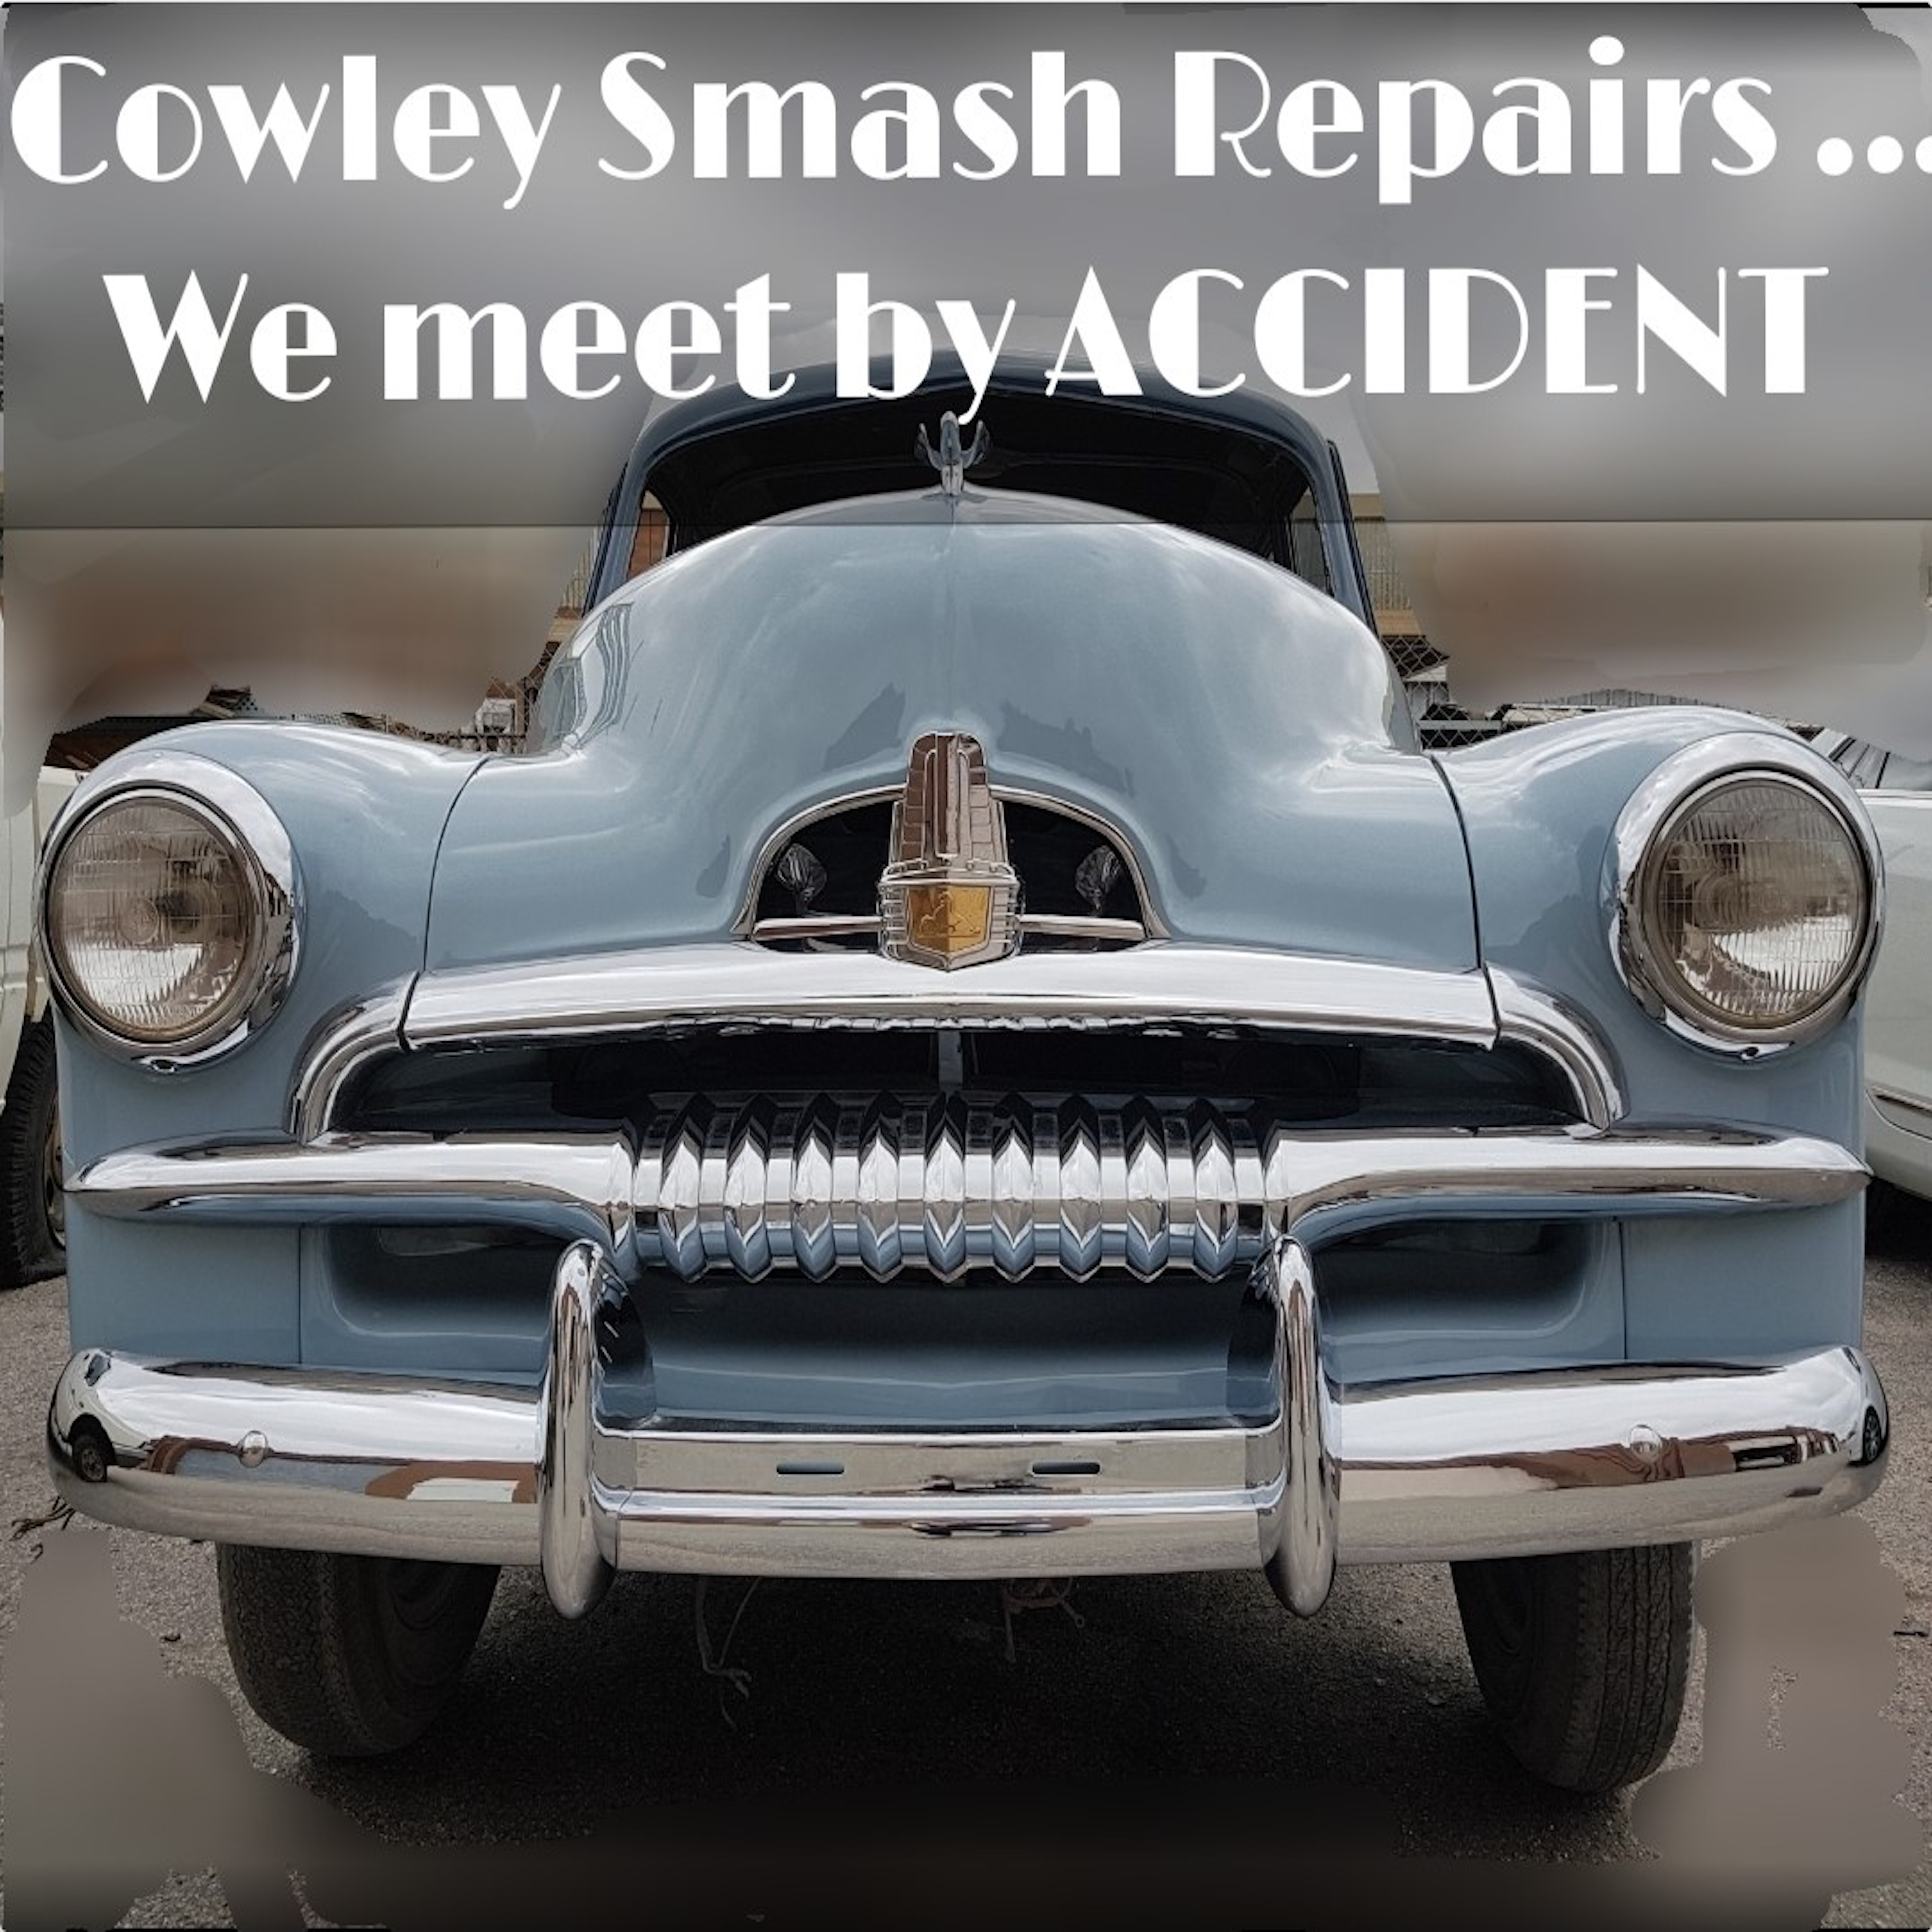 Cowley Smash Repairs